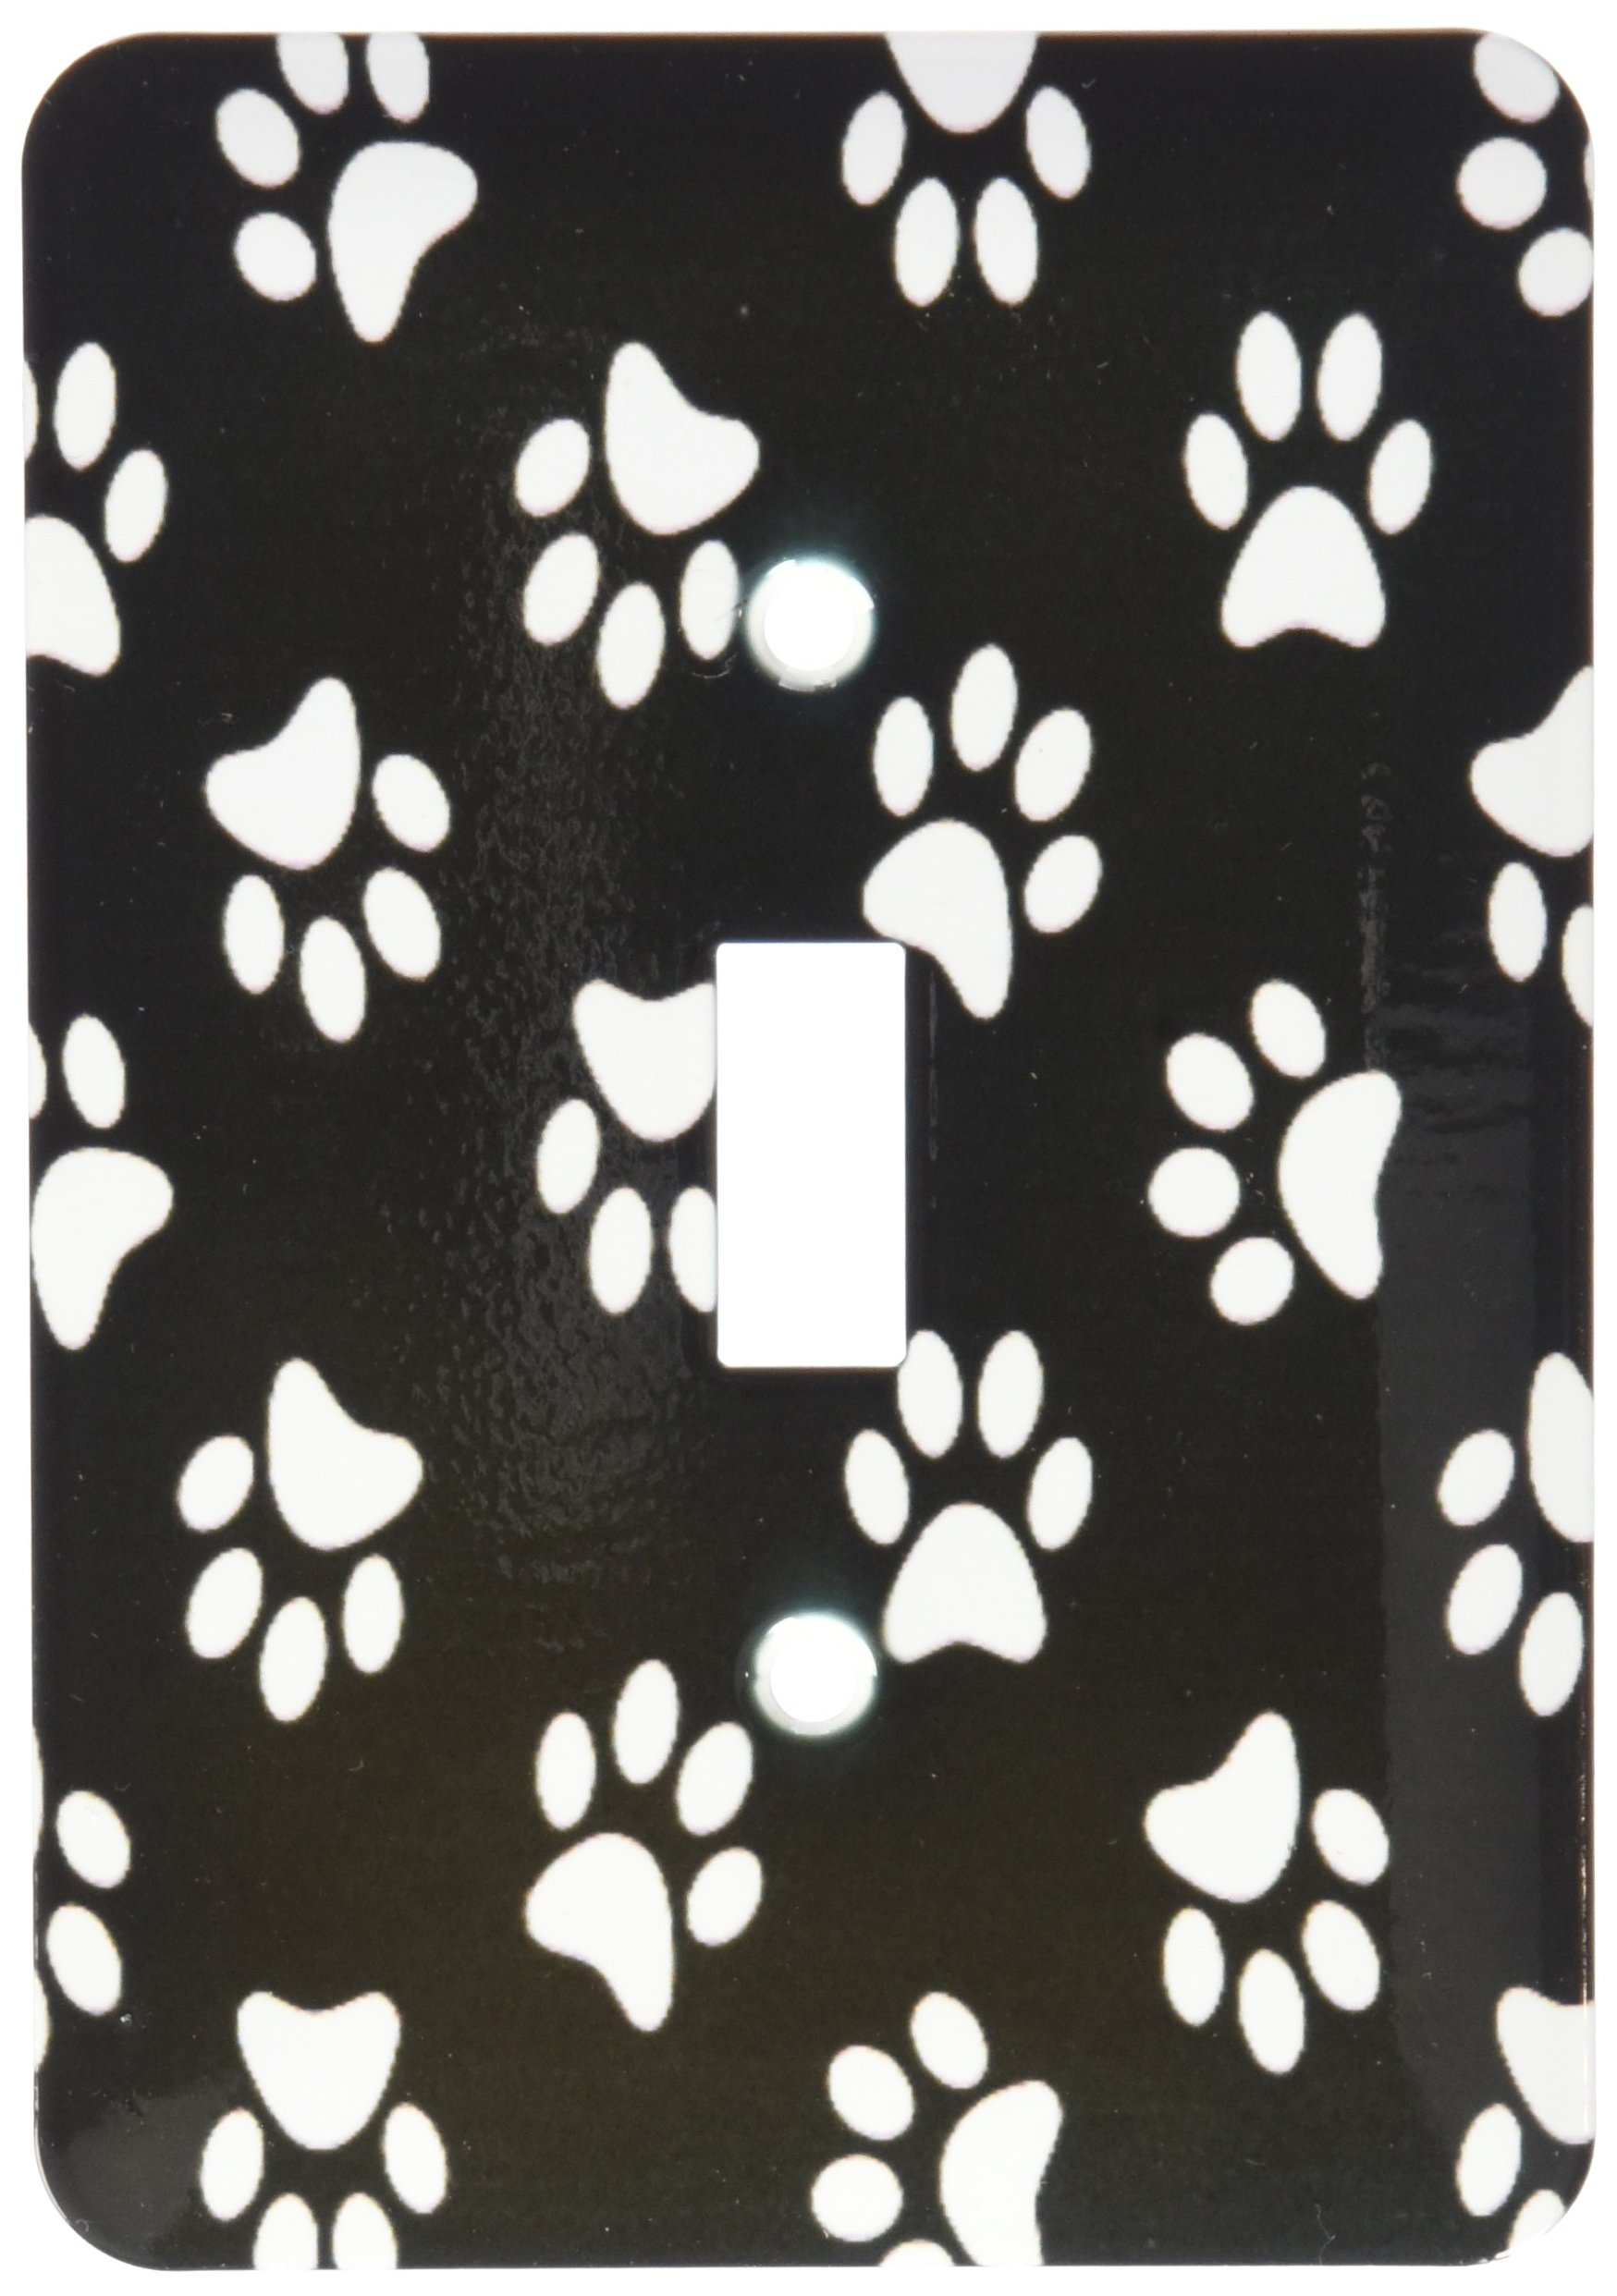 3dRose lsp_161522_1 Black & White Paw Print Pattern Cute Cartoon Animal Egg Dog or Cat Footprints Single Toggle Switch